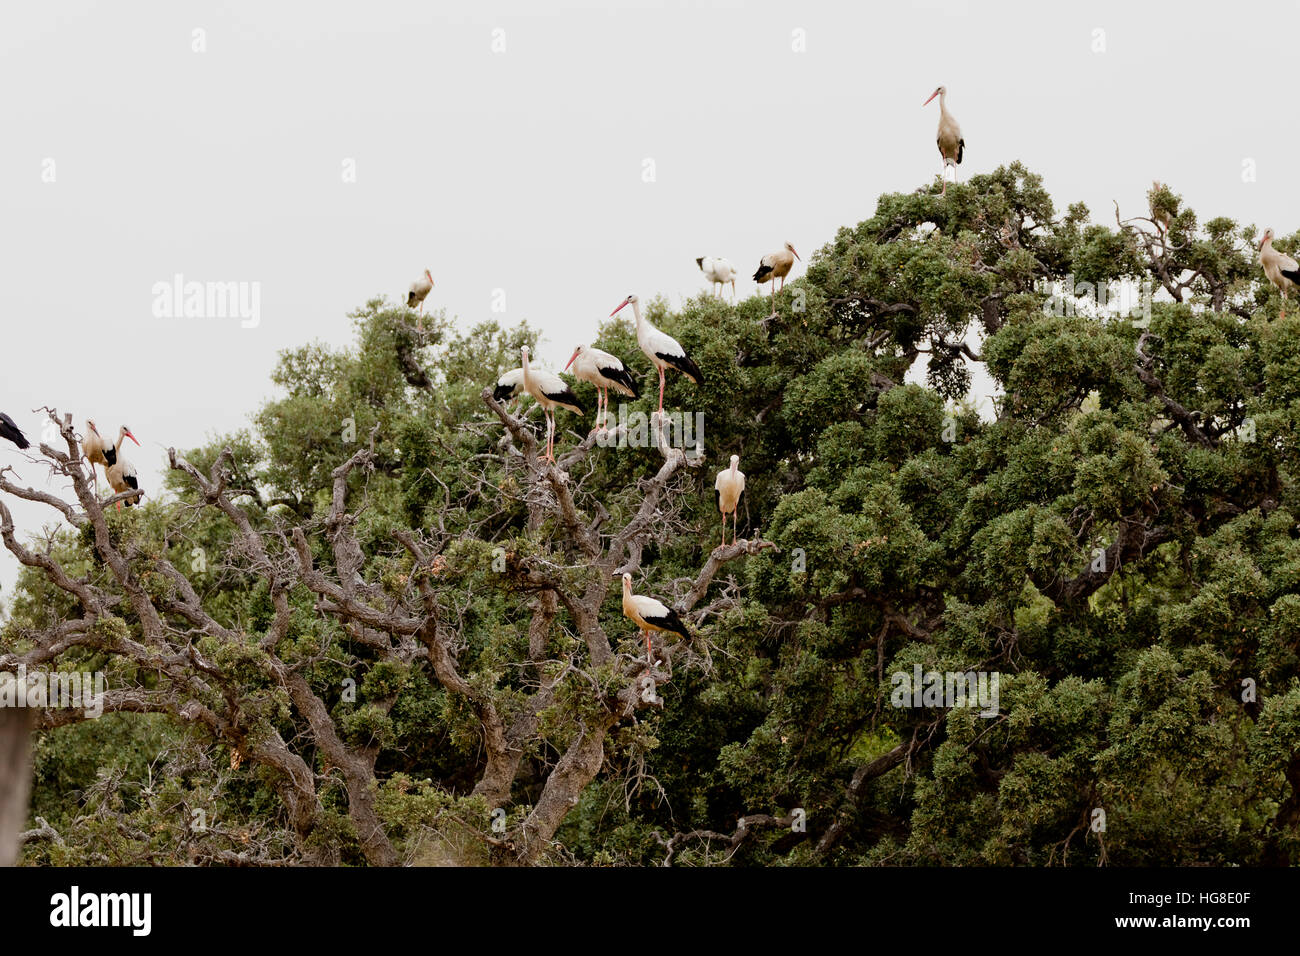 Low angle view of storks perching on tree against clear sky - Stock Image